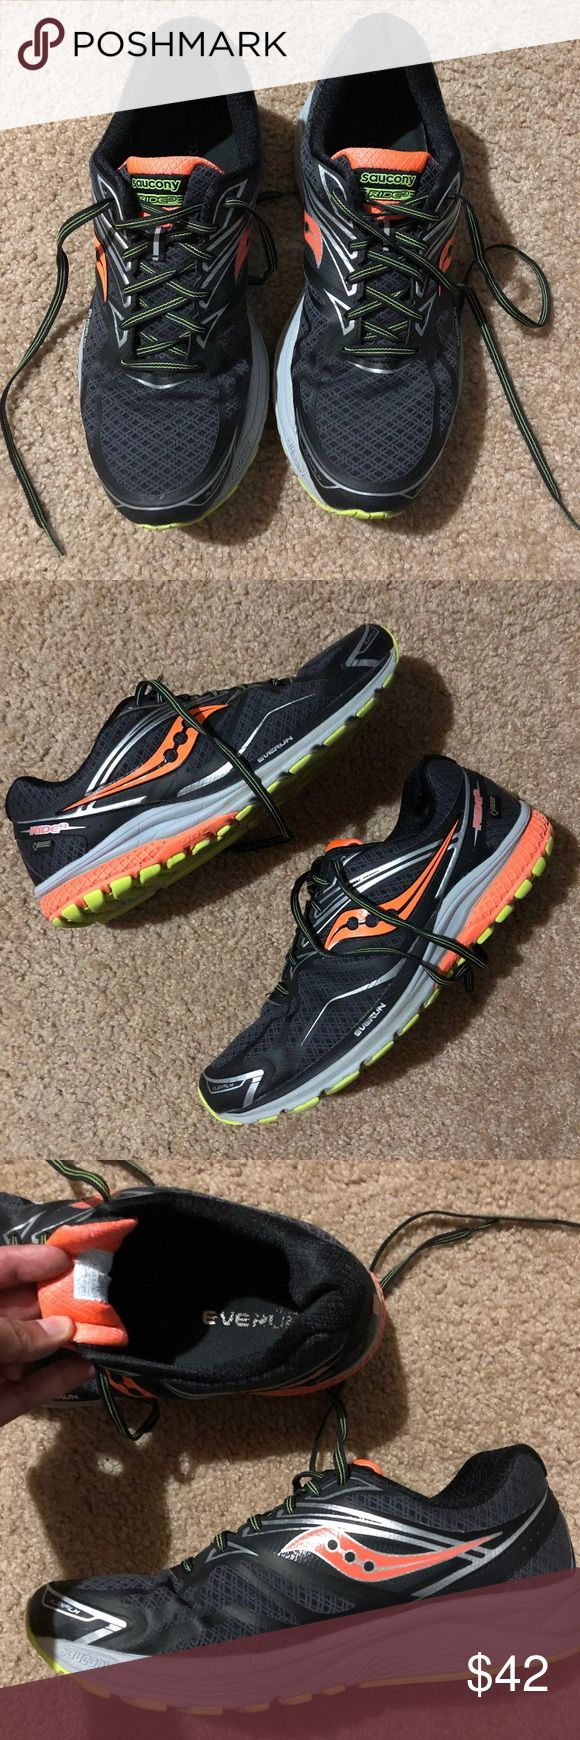 SAUCONY RIDE 9 GORE-TEX Running Shoes Men's size 11 - GORE-TEX Waterproof running shoes. Shoes in excellent used conditions. Shoes still have lots of traction on them still. Saucony Shoes Athletic Shoes